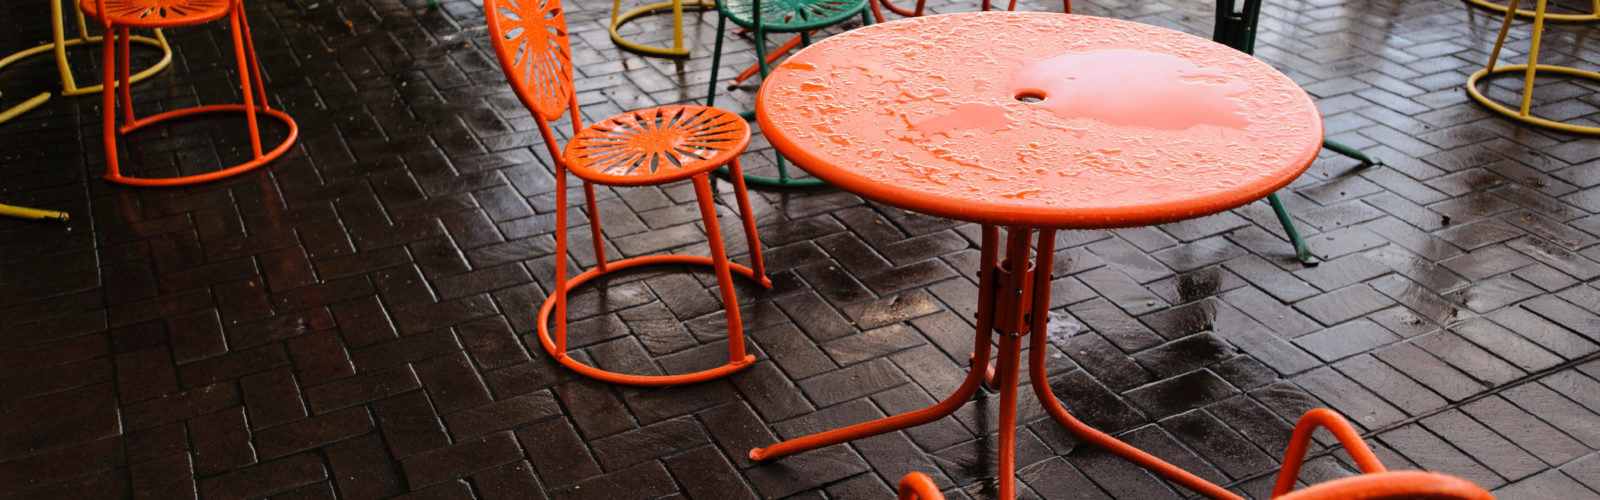 Tables and chairs on the Union terrace